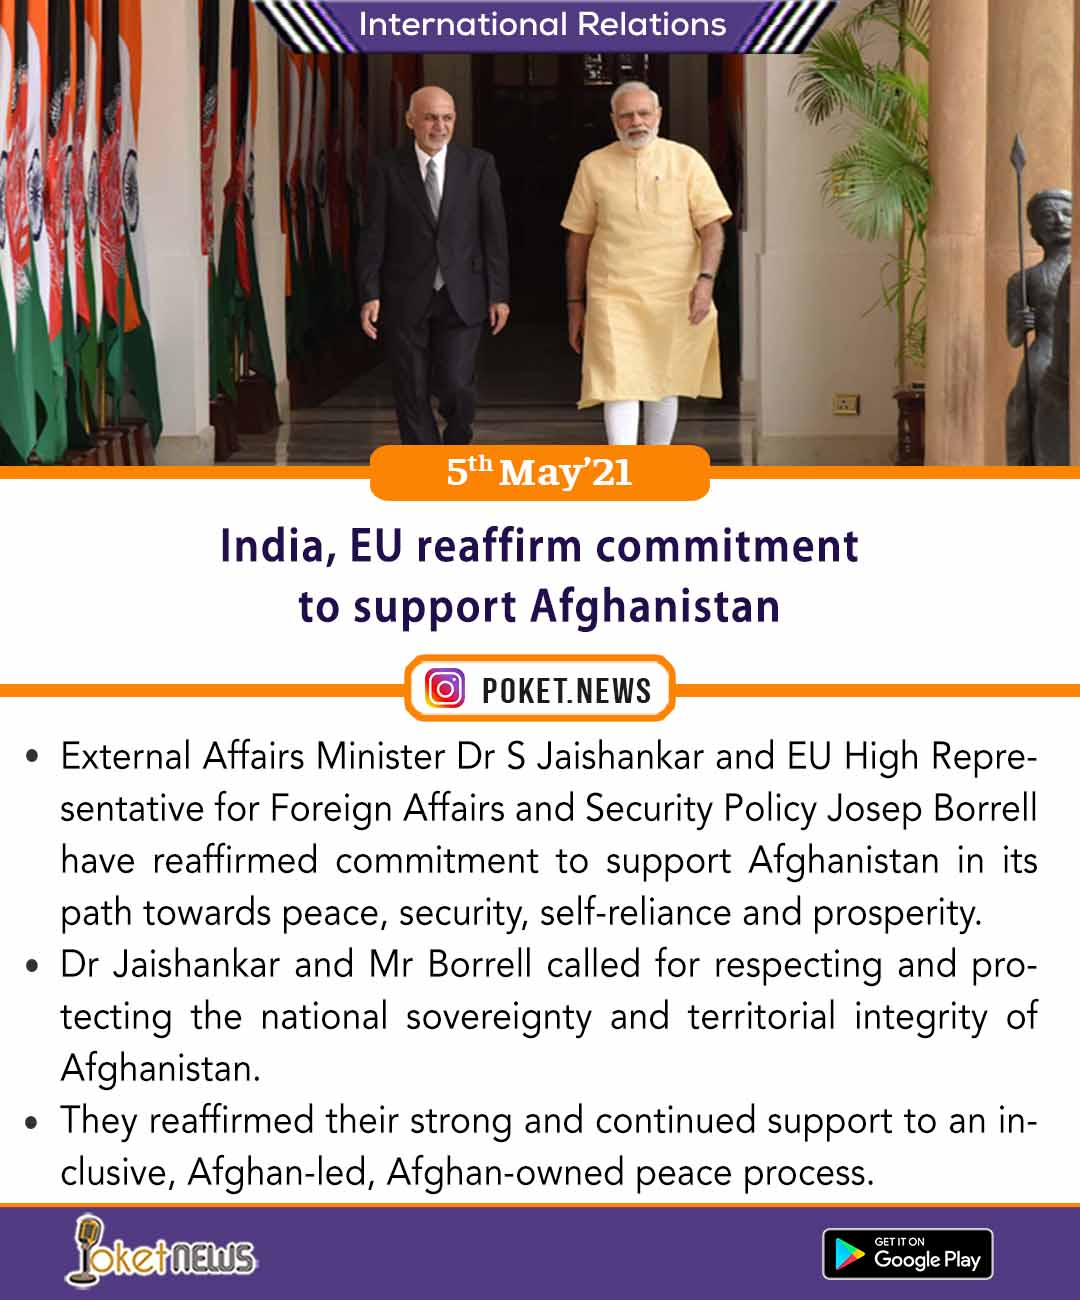 India, EU reaffirm commitment to support Afghanistan